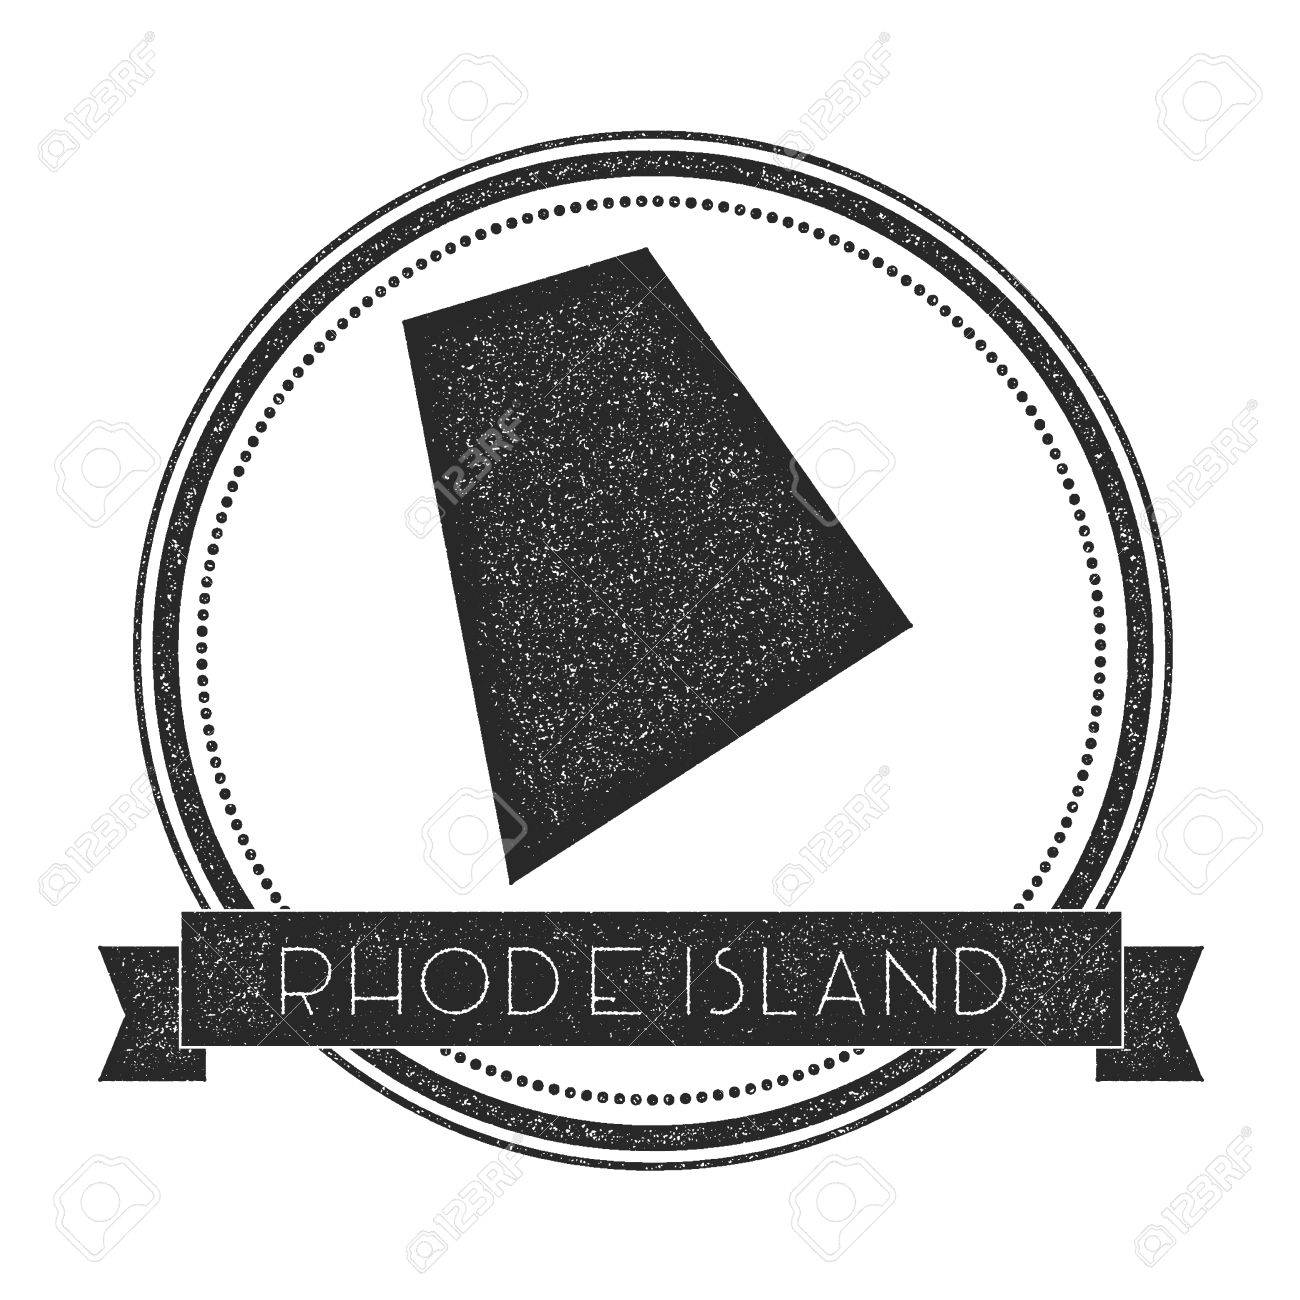 Rhode Island Location On The US Map Rhode Island Simple English - Rhode island on the us map